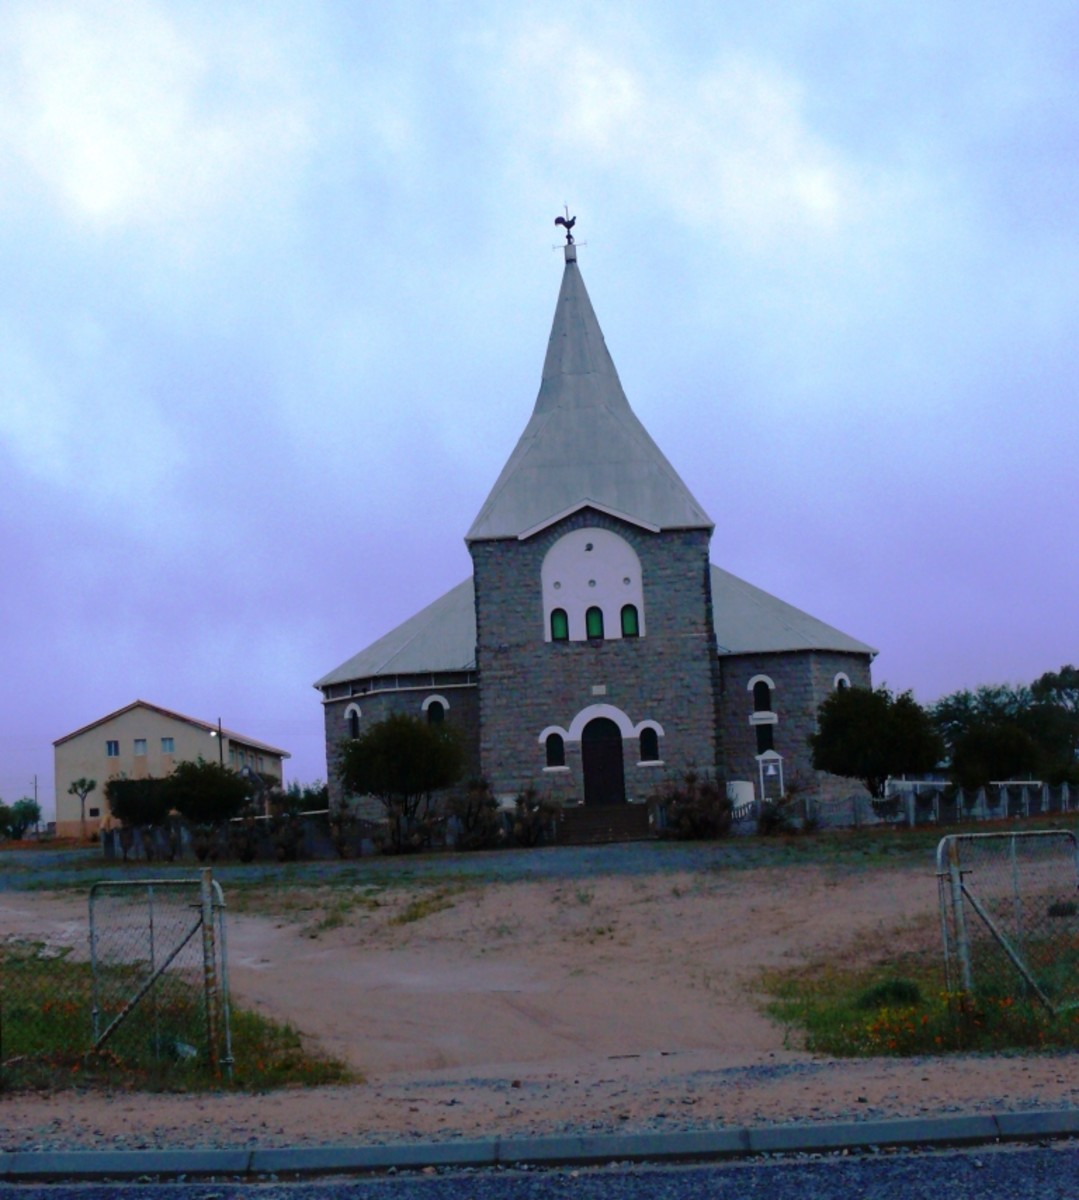 Every town has a church building or two